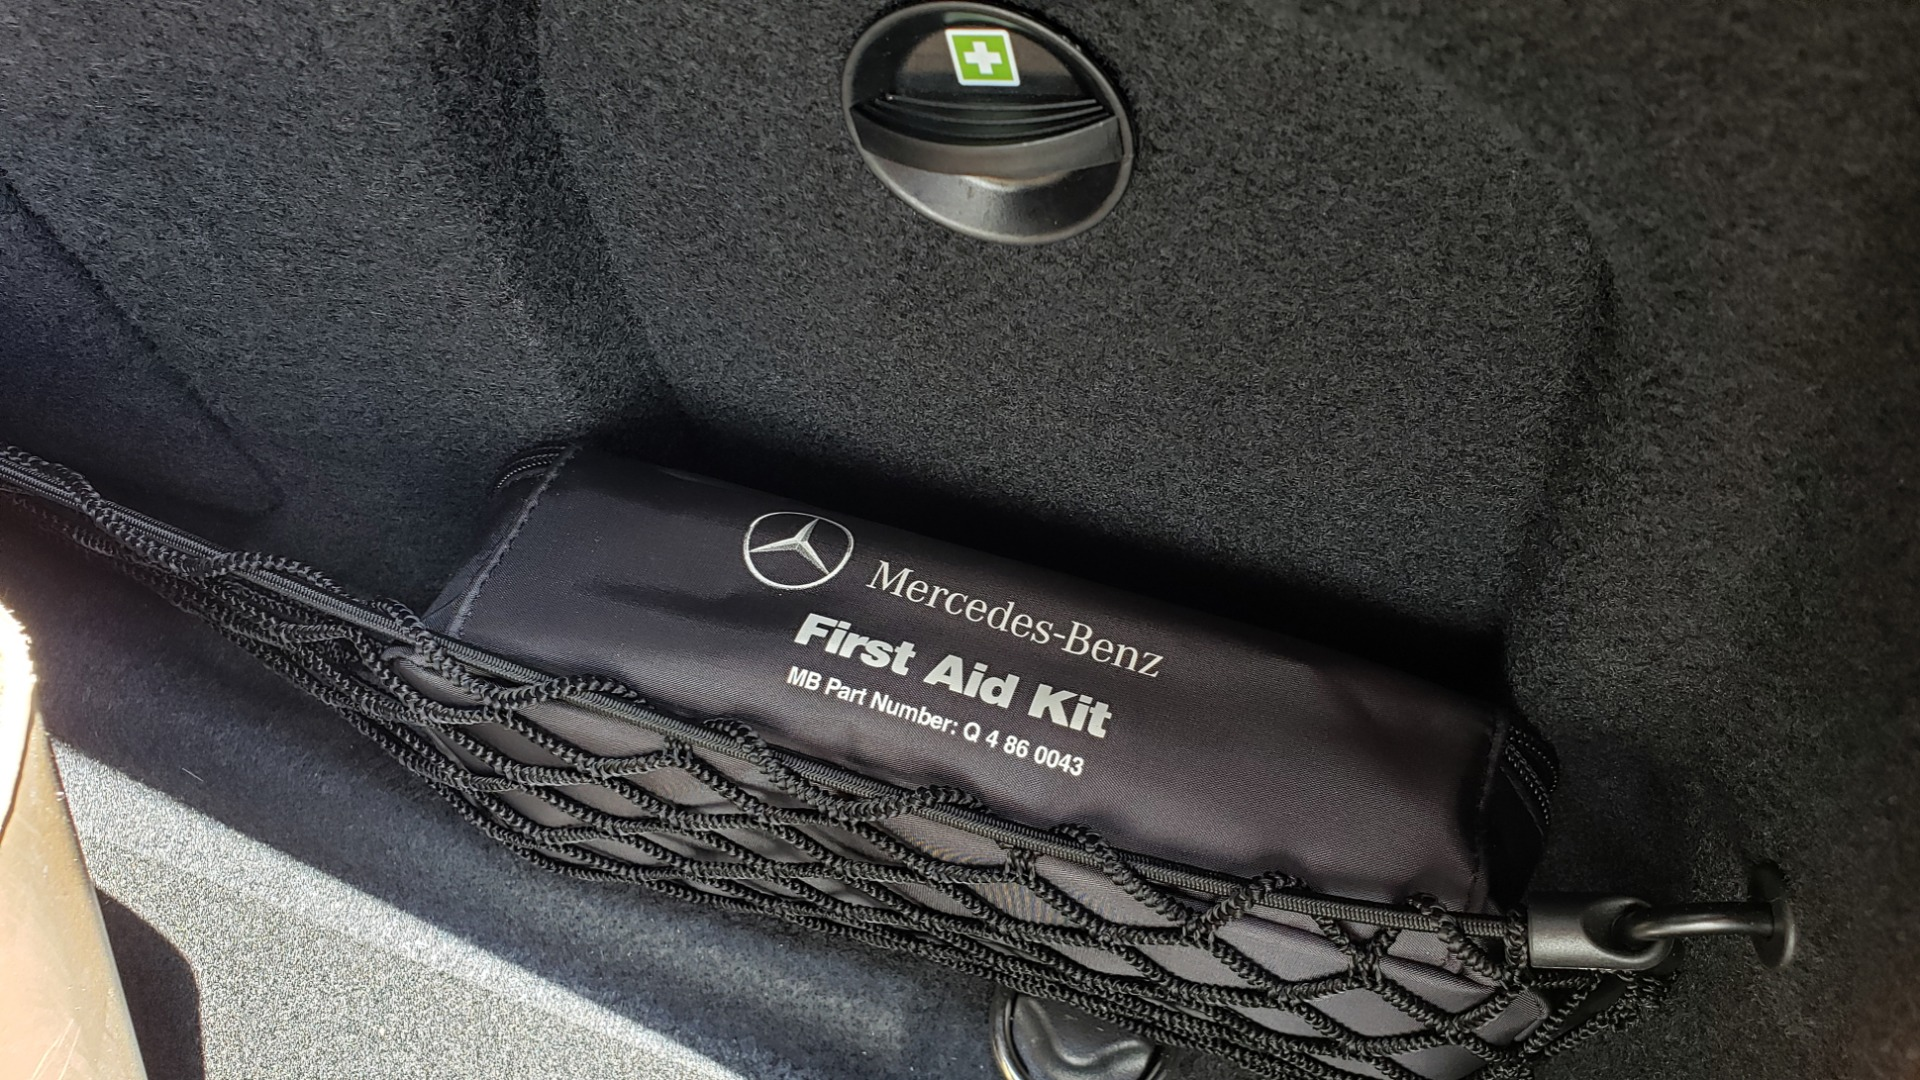 Used 2014 Mercedes-Benz CLS-CLASS CLS 550 PREMIUM / AMG SPORT WHLS / SUNROOF / LANE TRACK / PARKTRONIC for sale Sold at Formula Imports in Charlotte NC 28227 20